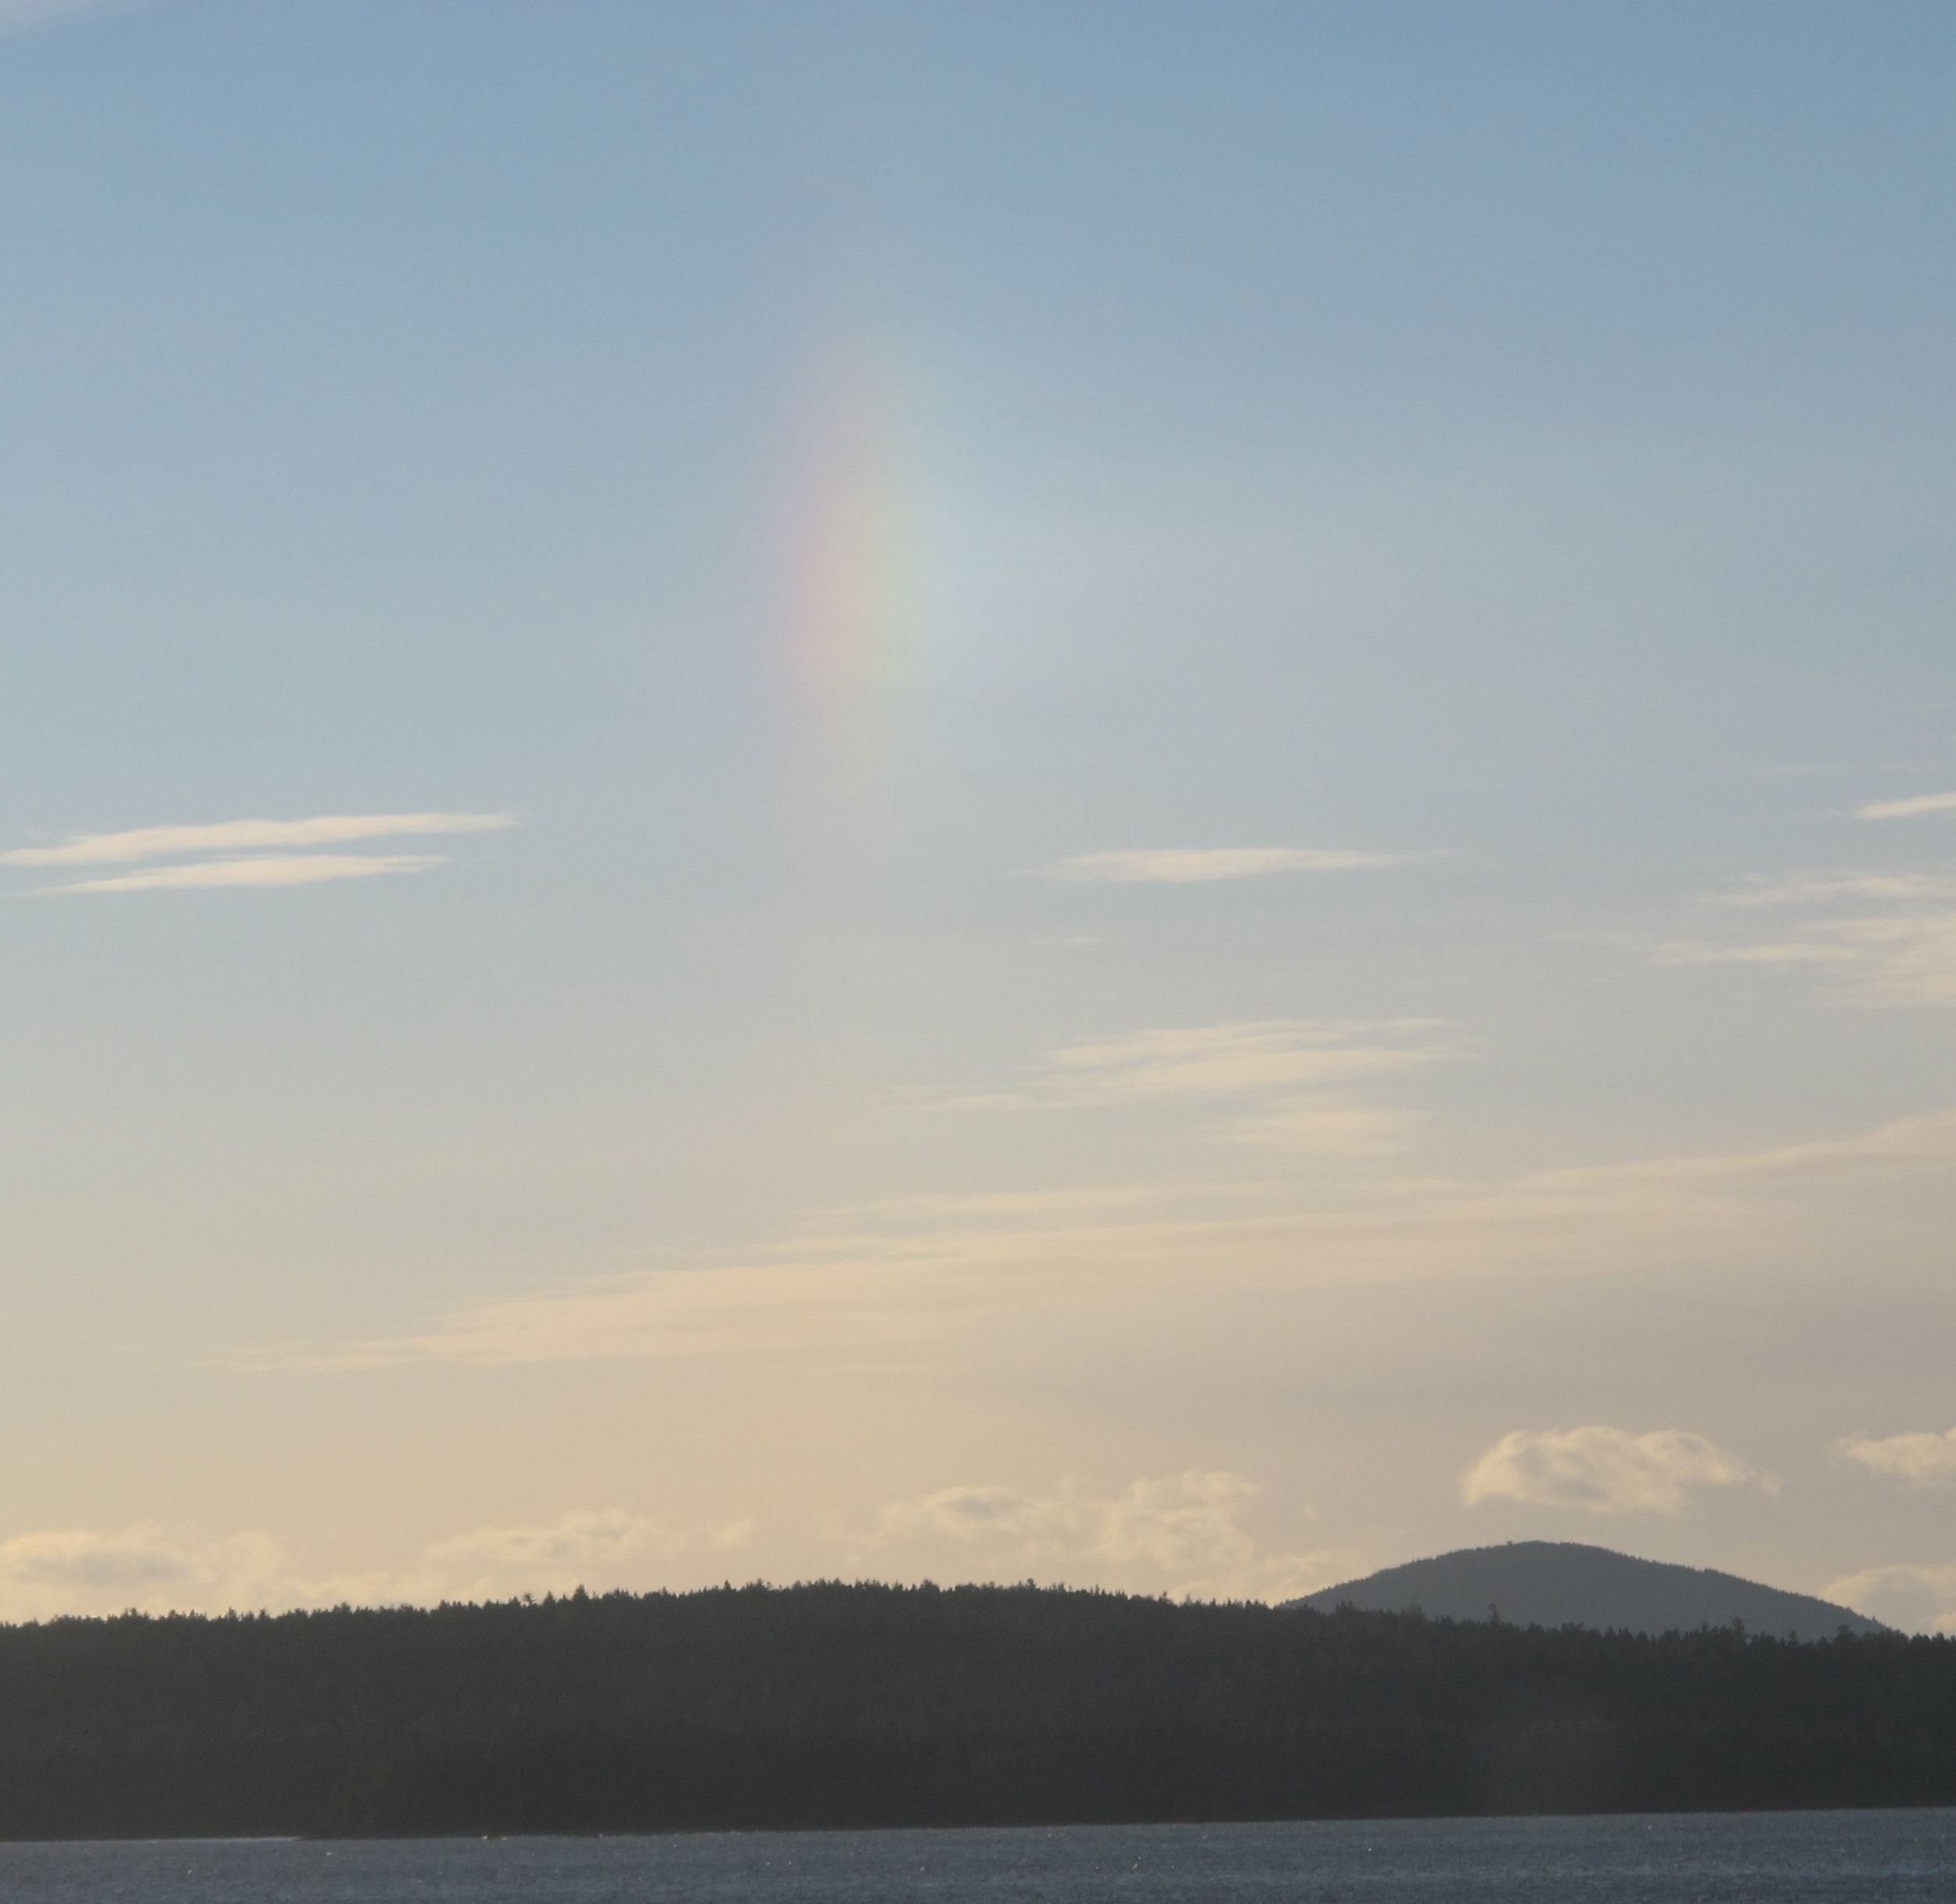 We saw this vertical ice-crystal rainbow one morning this week. It's called a Sun dog, and it's created by sunlight hitting fine ice crystals nicknamed diamond dust, which act like prisms. It can happen in very cold weather.